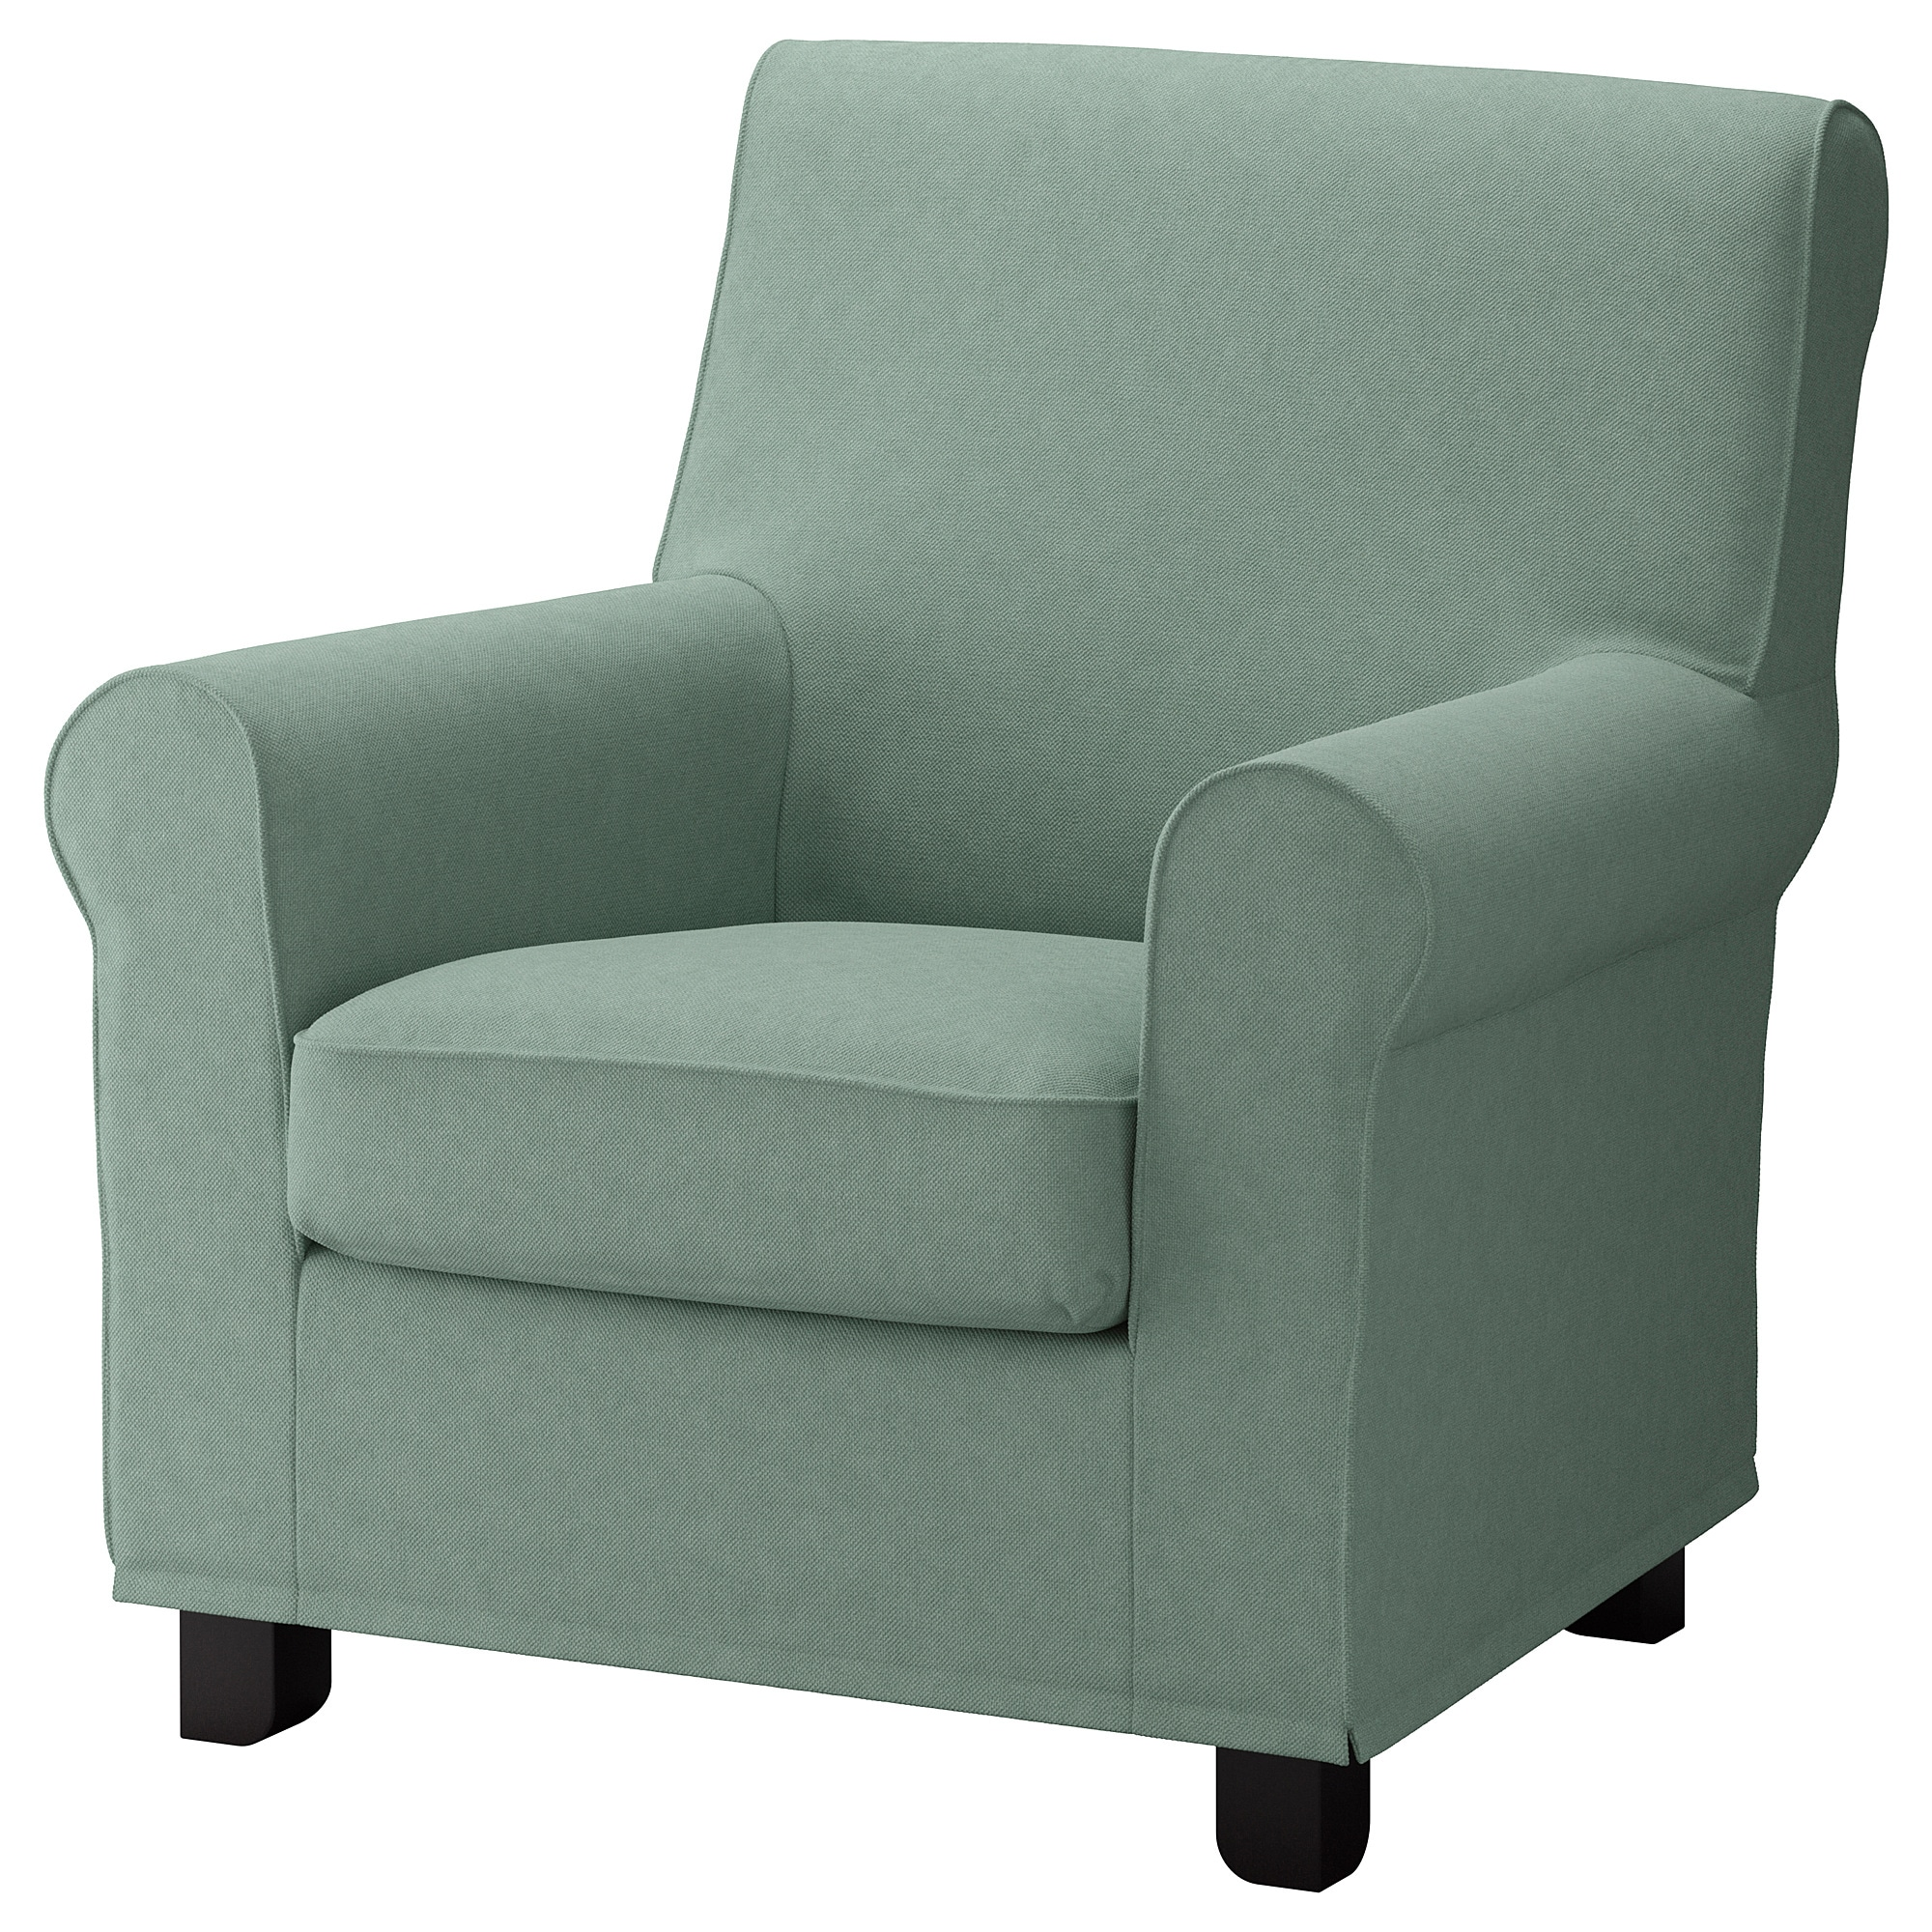 GRÖNLID Armchair - Tallmyra light green - IKEA